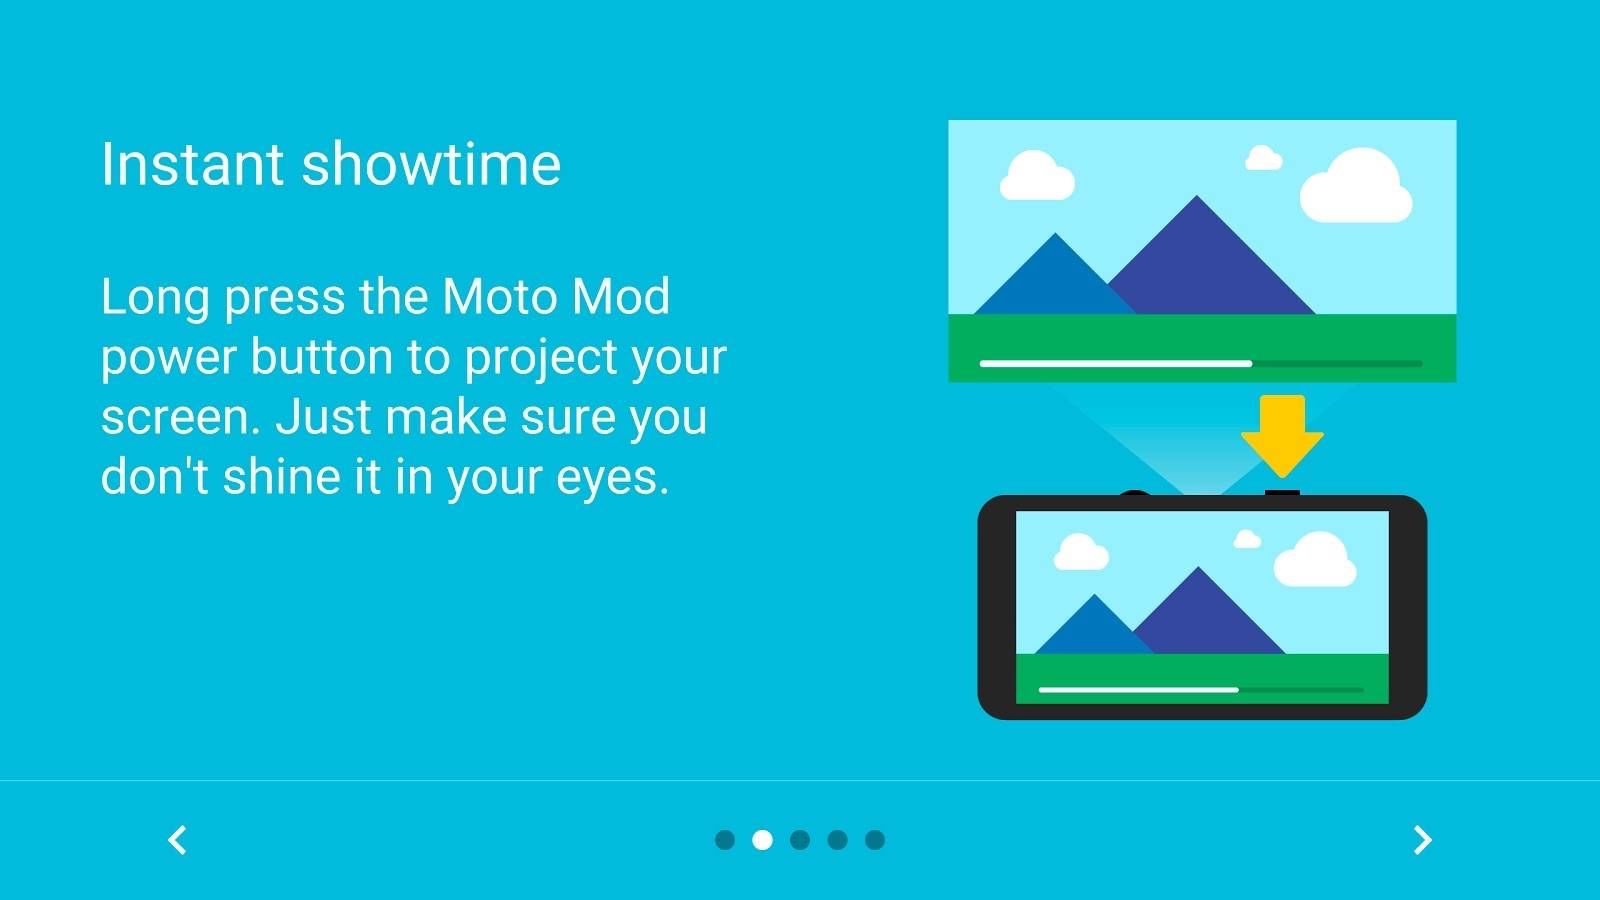 Moto Mods Manager, Moto Mods Projector compatible apps launched by